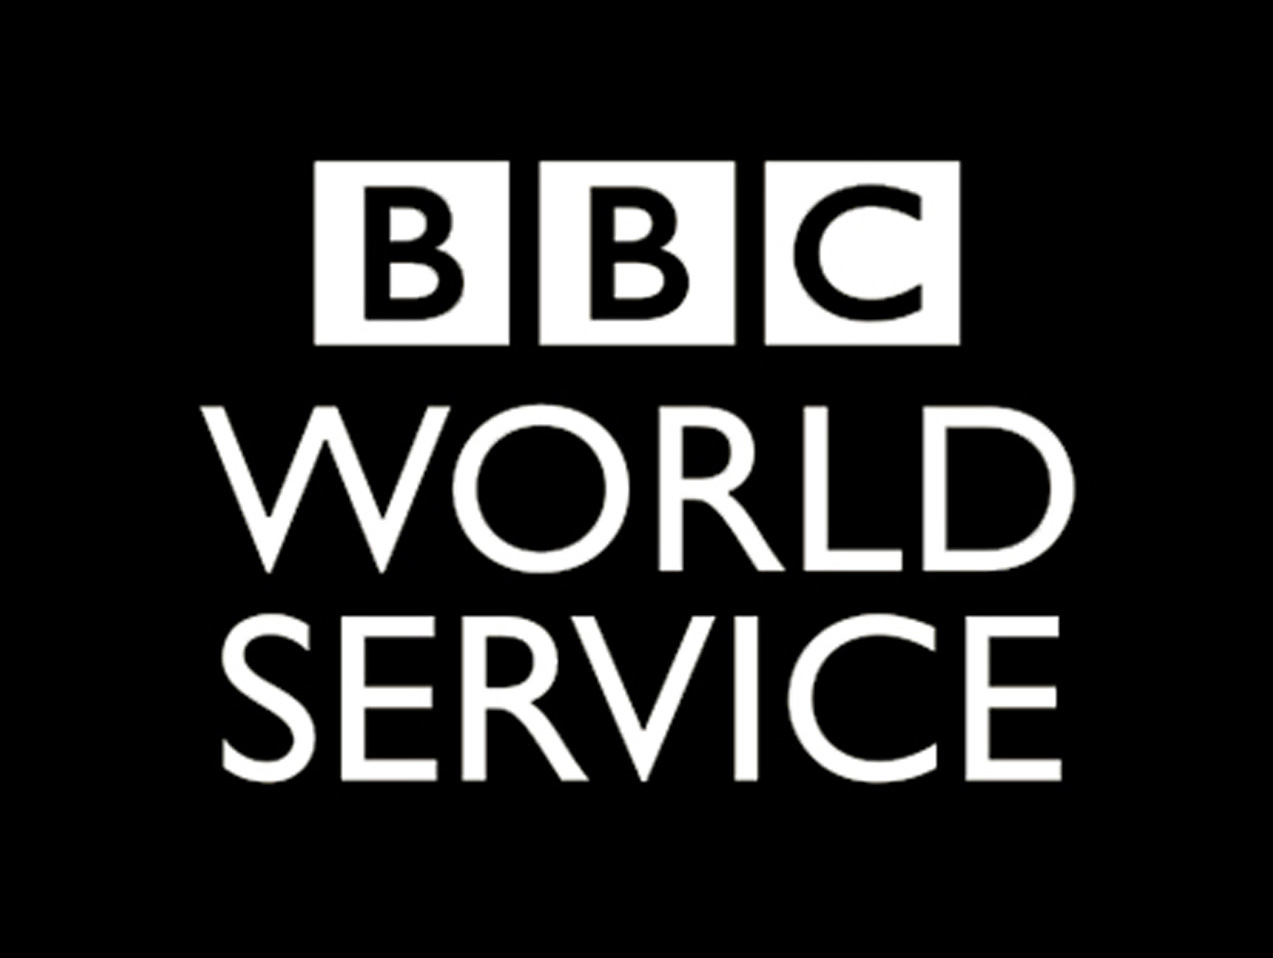 Jean Smith on BBC World Service